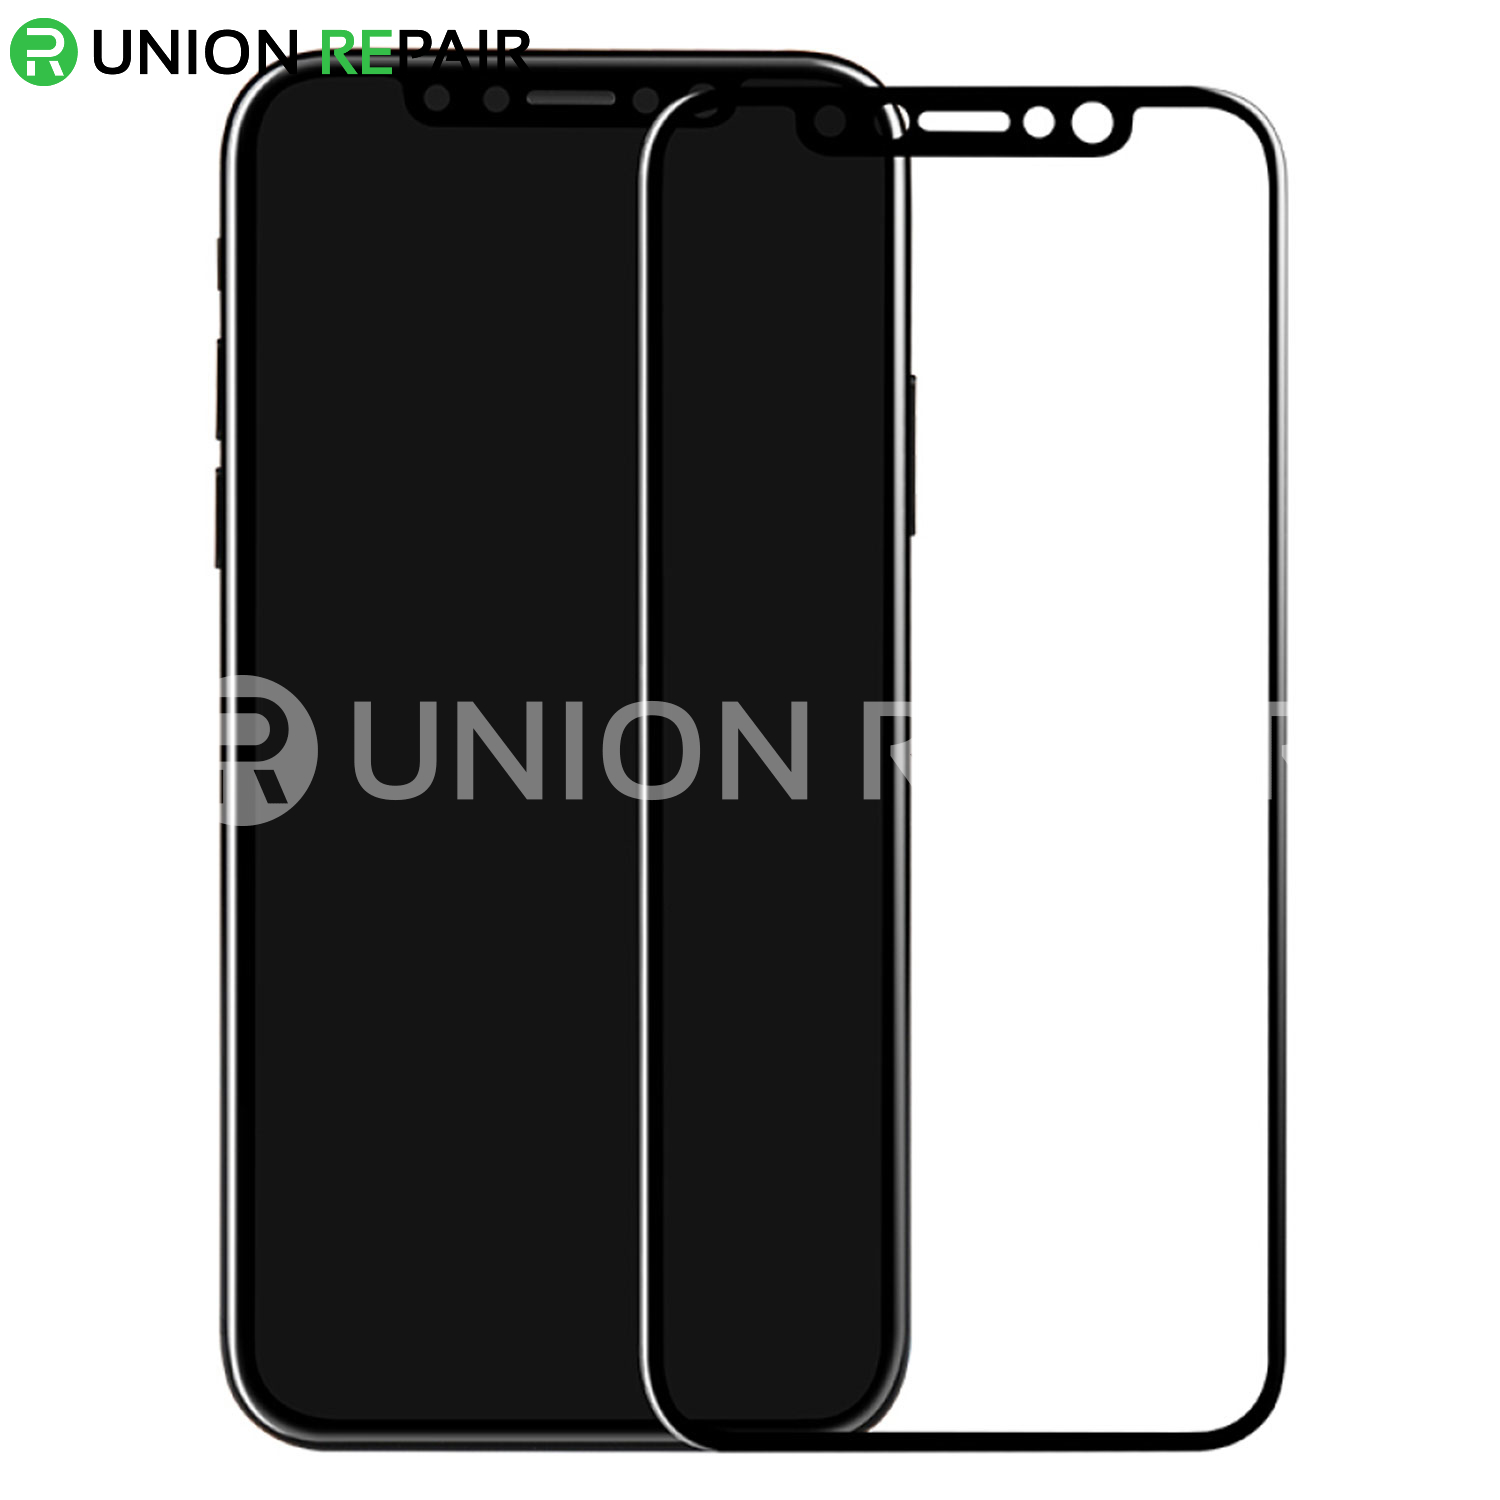 5D Black Explosion-Proof Tempered Glass Film for iPhone X/XS/11Pro